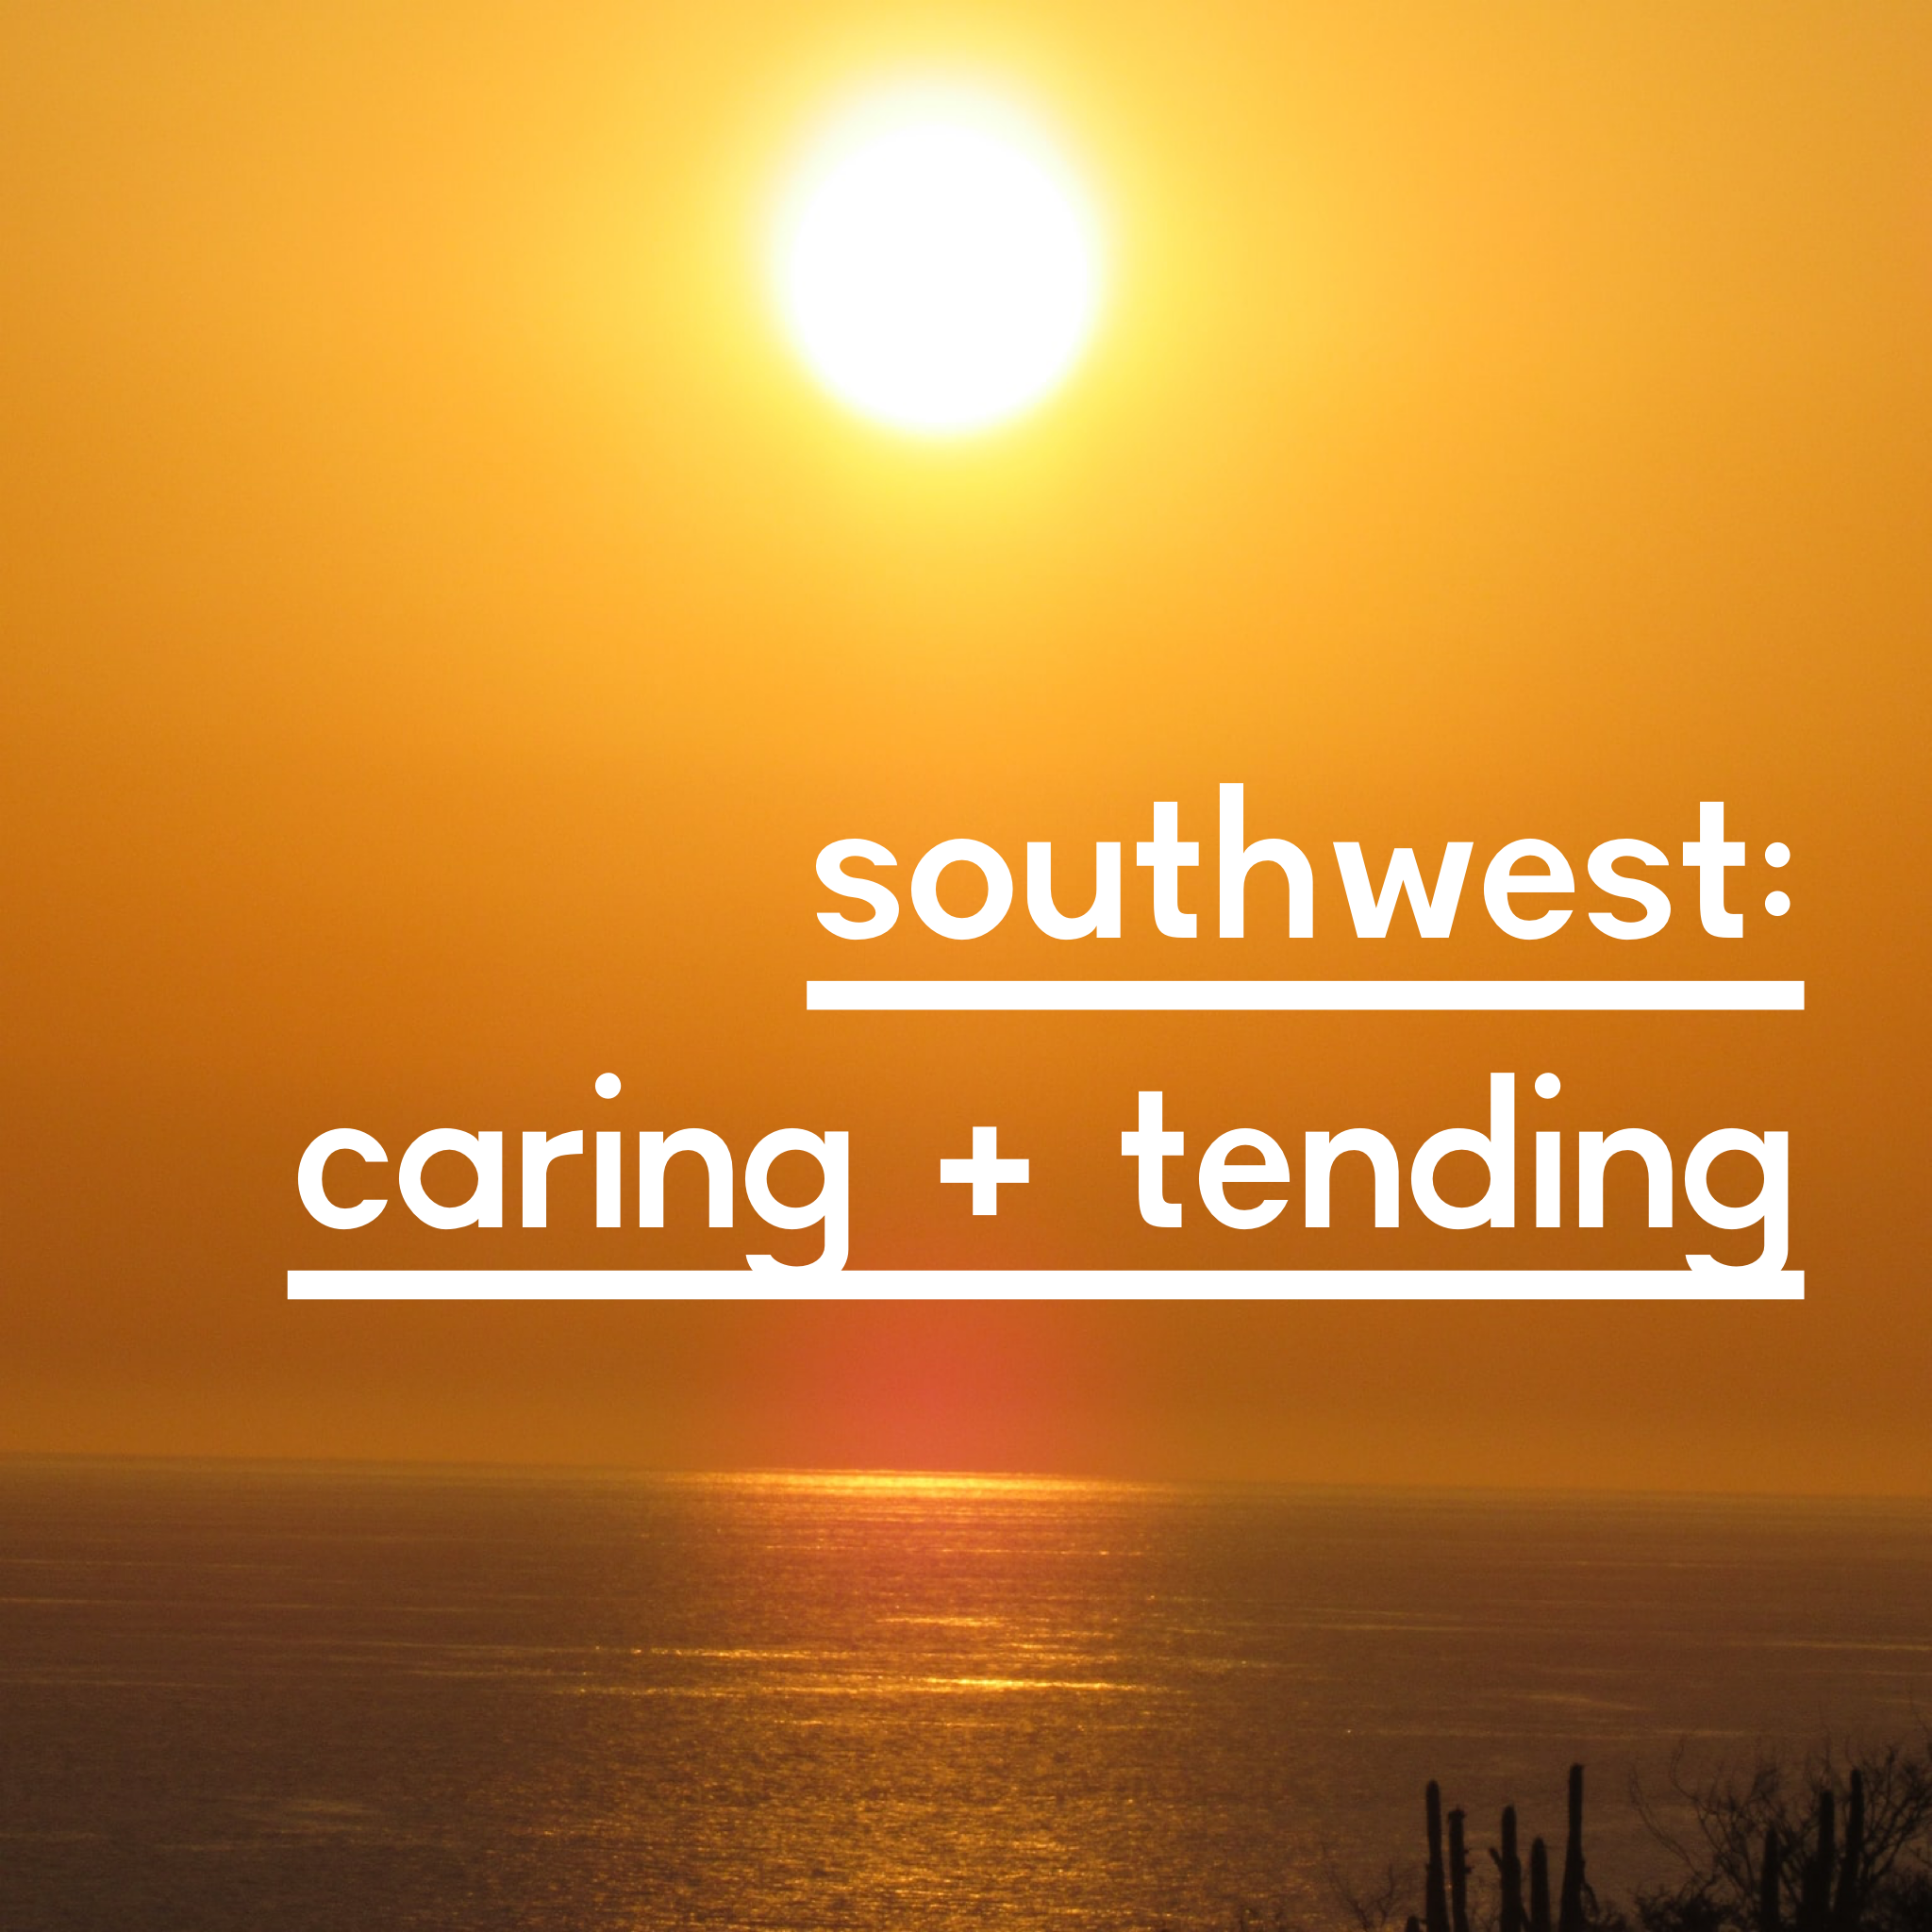 southwest caring and tending